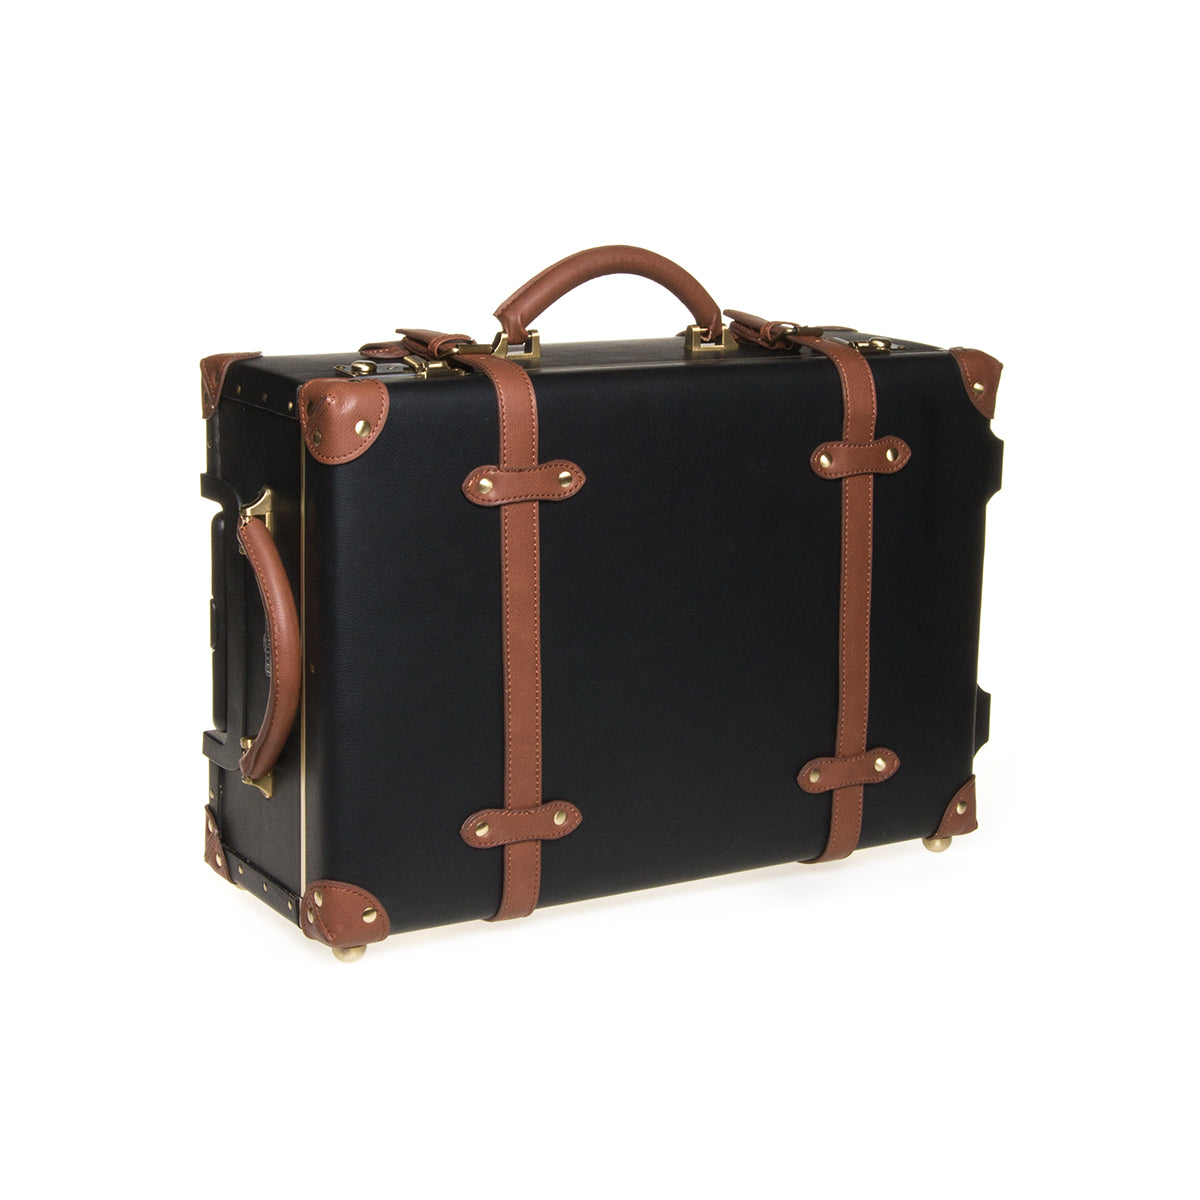 Carry-On Cabin Luggage - Black / Tan - globitetravel